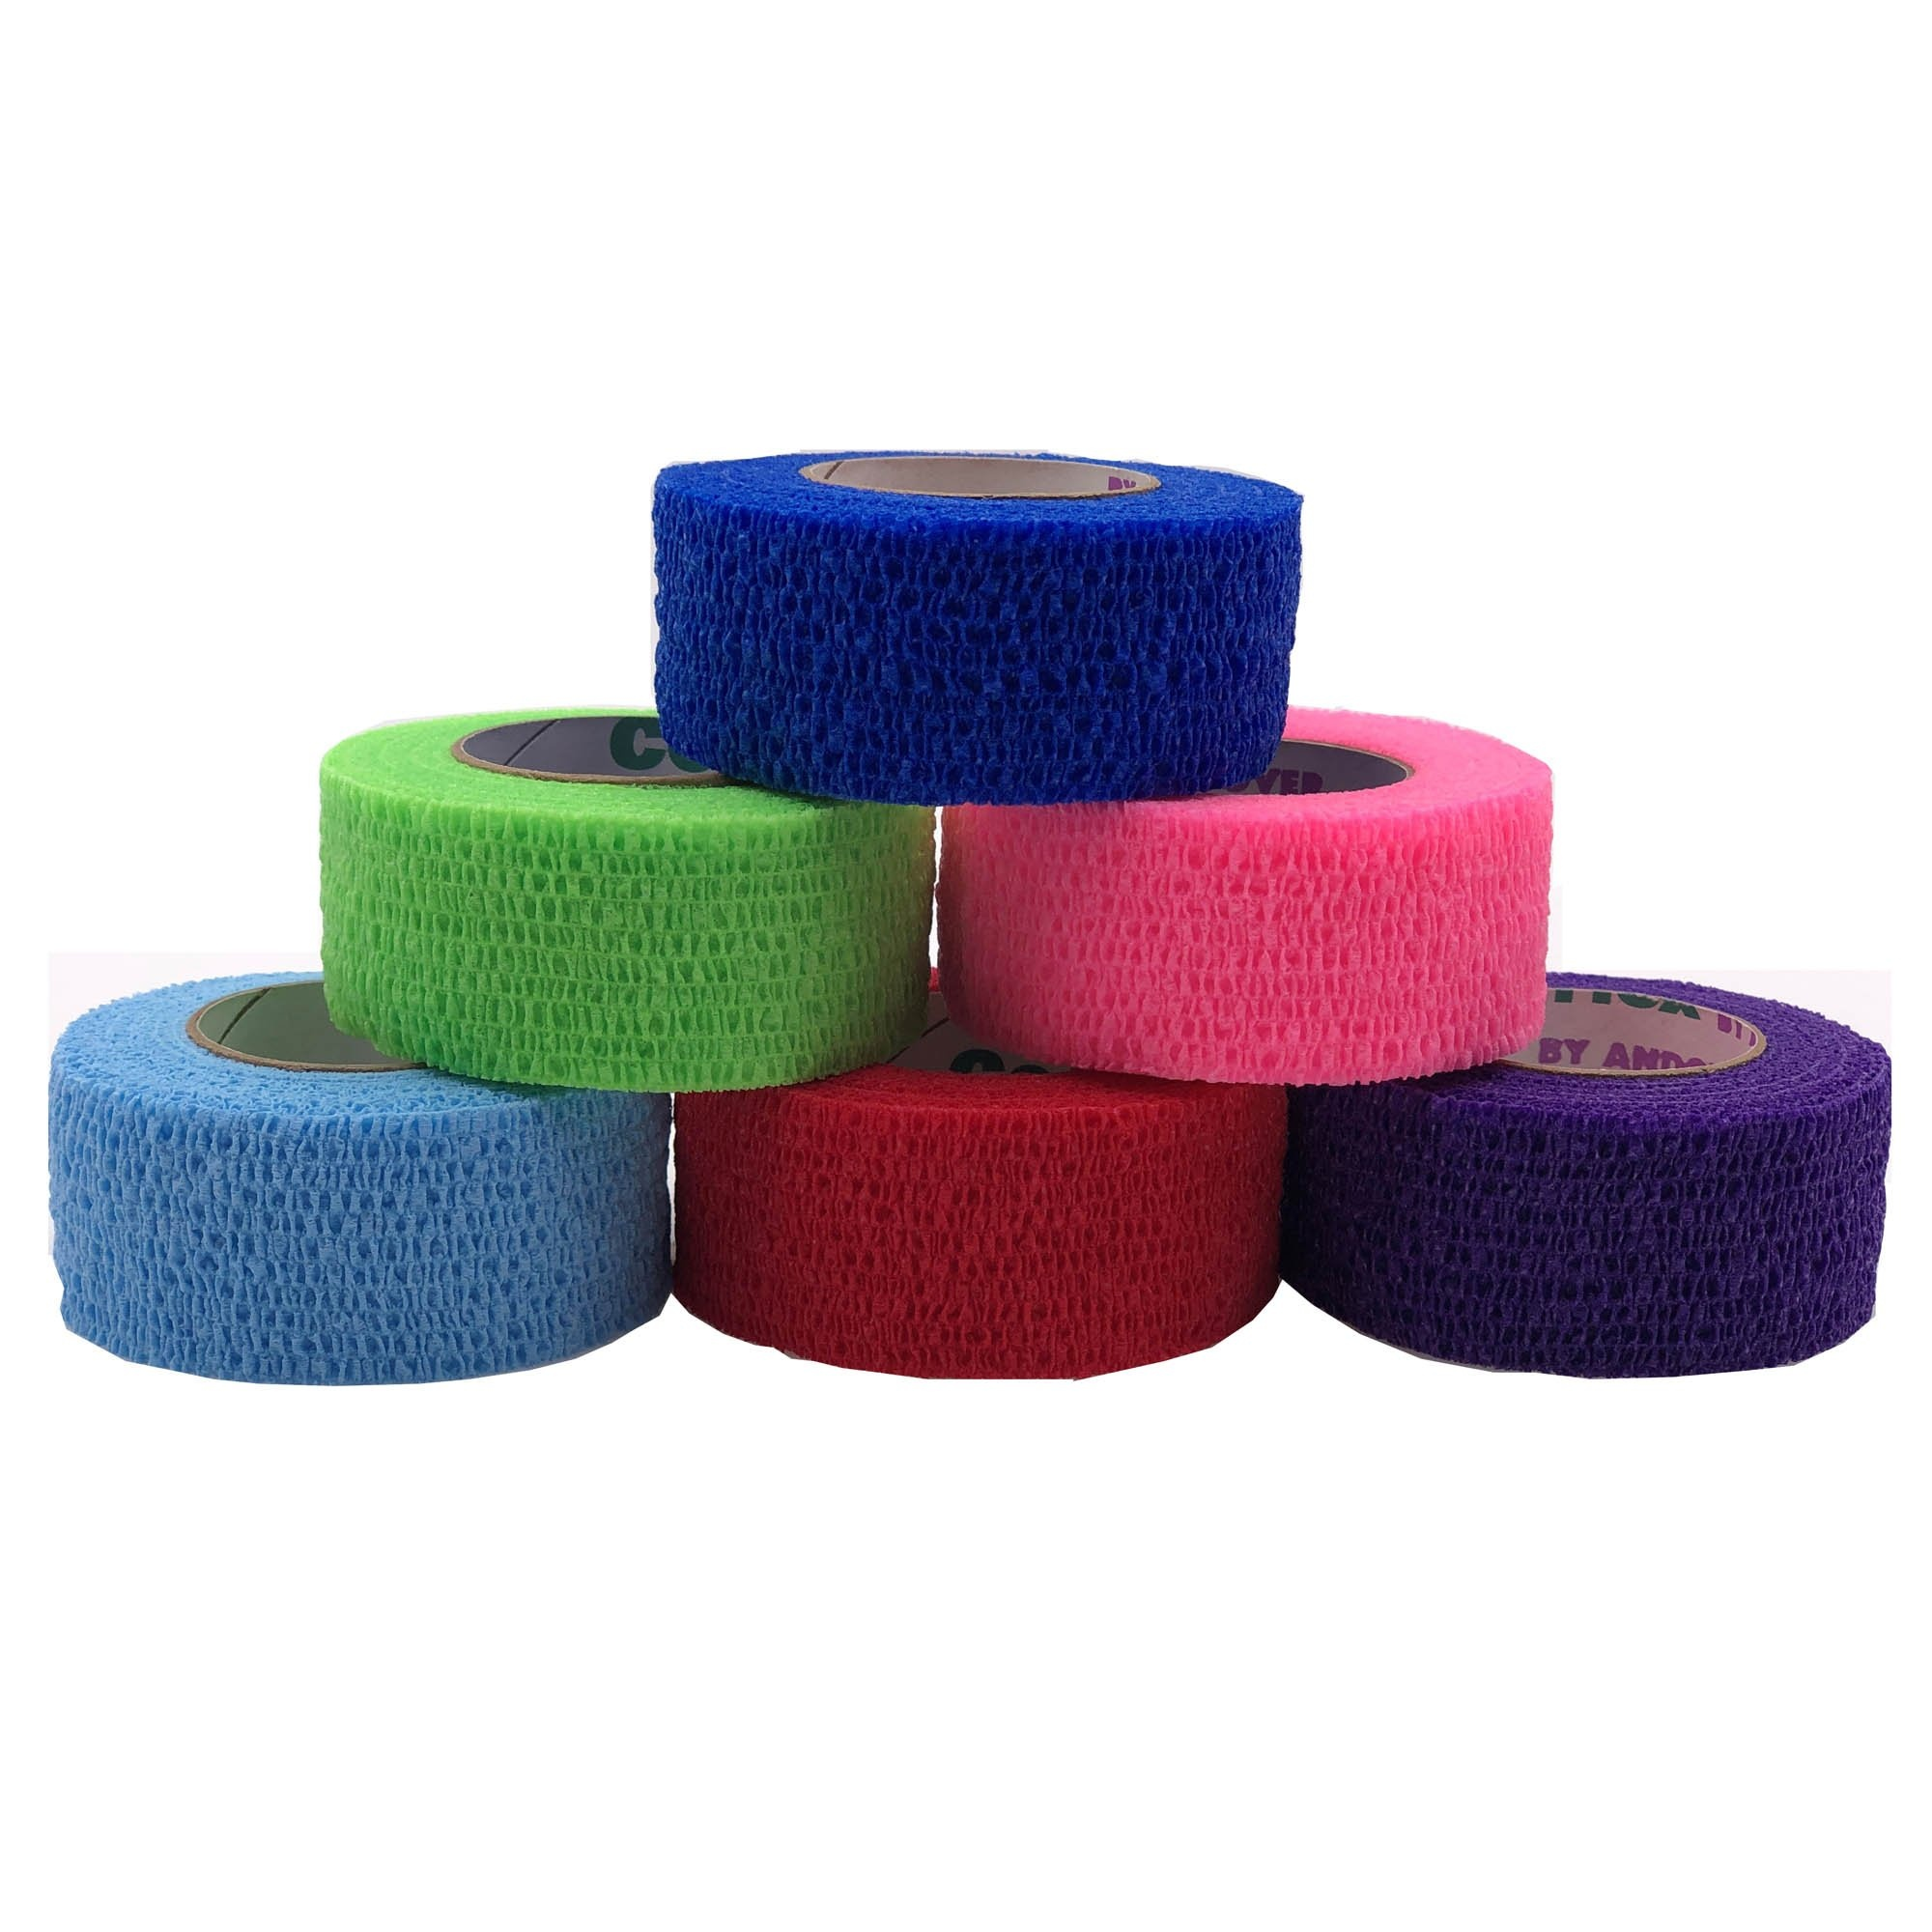 """Andover Coated Products CoFlex Med Cohesive Bandage, Multiple Colors, 2"""" x 5 yds, 7200CP, Case of 36"""